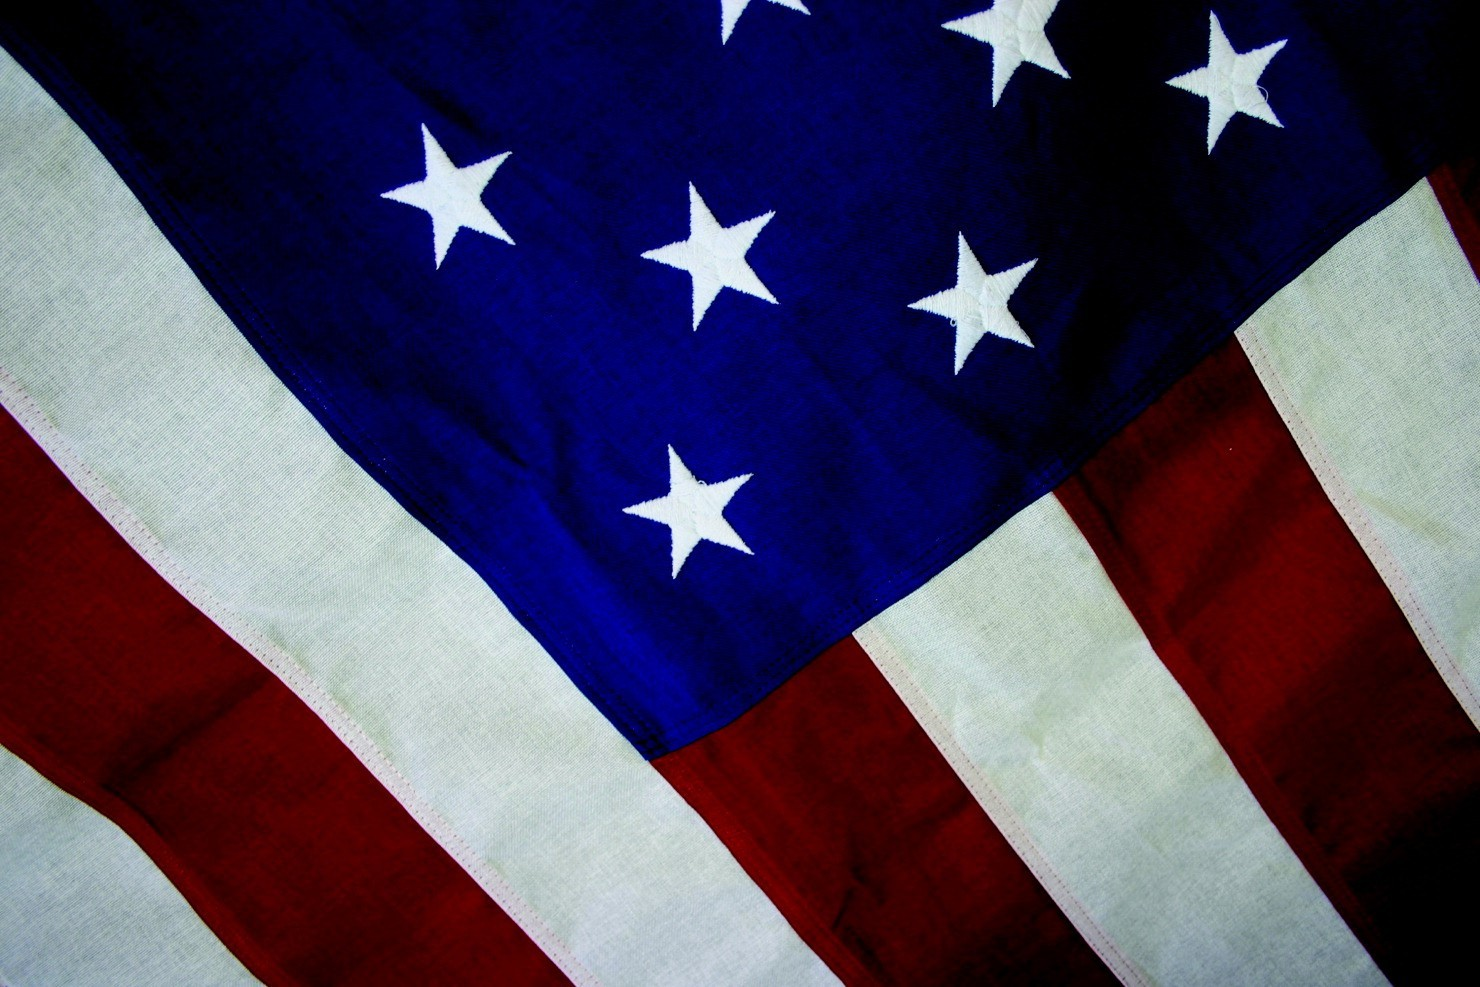 4' X 6' U.S. Flag, Polyester